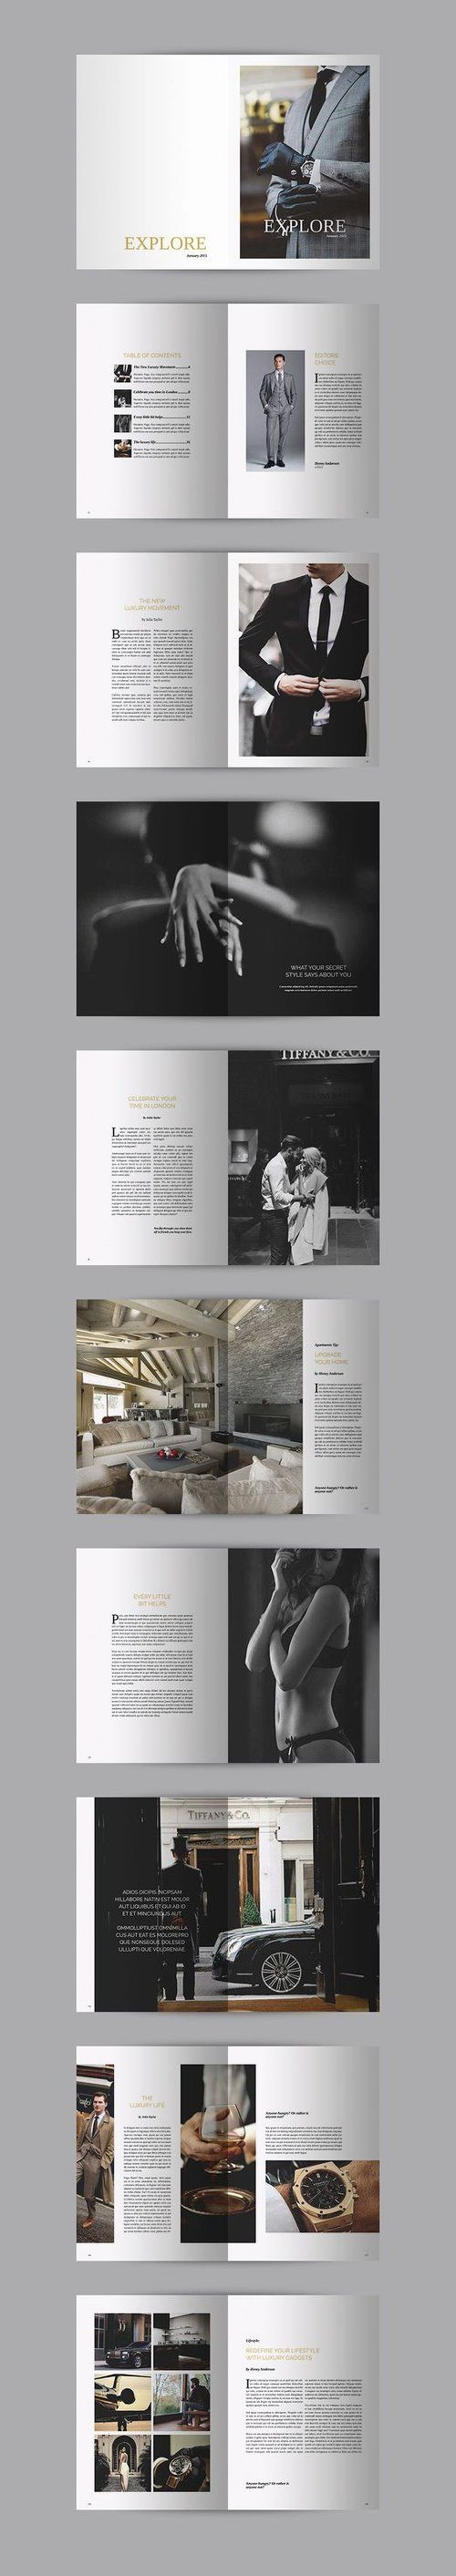 Check out the first frame for magazines by FRAMO+ | www.framoplus.com | #FRAMO+